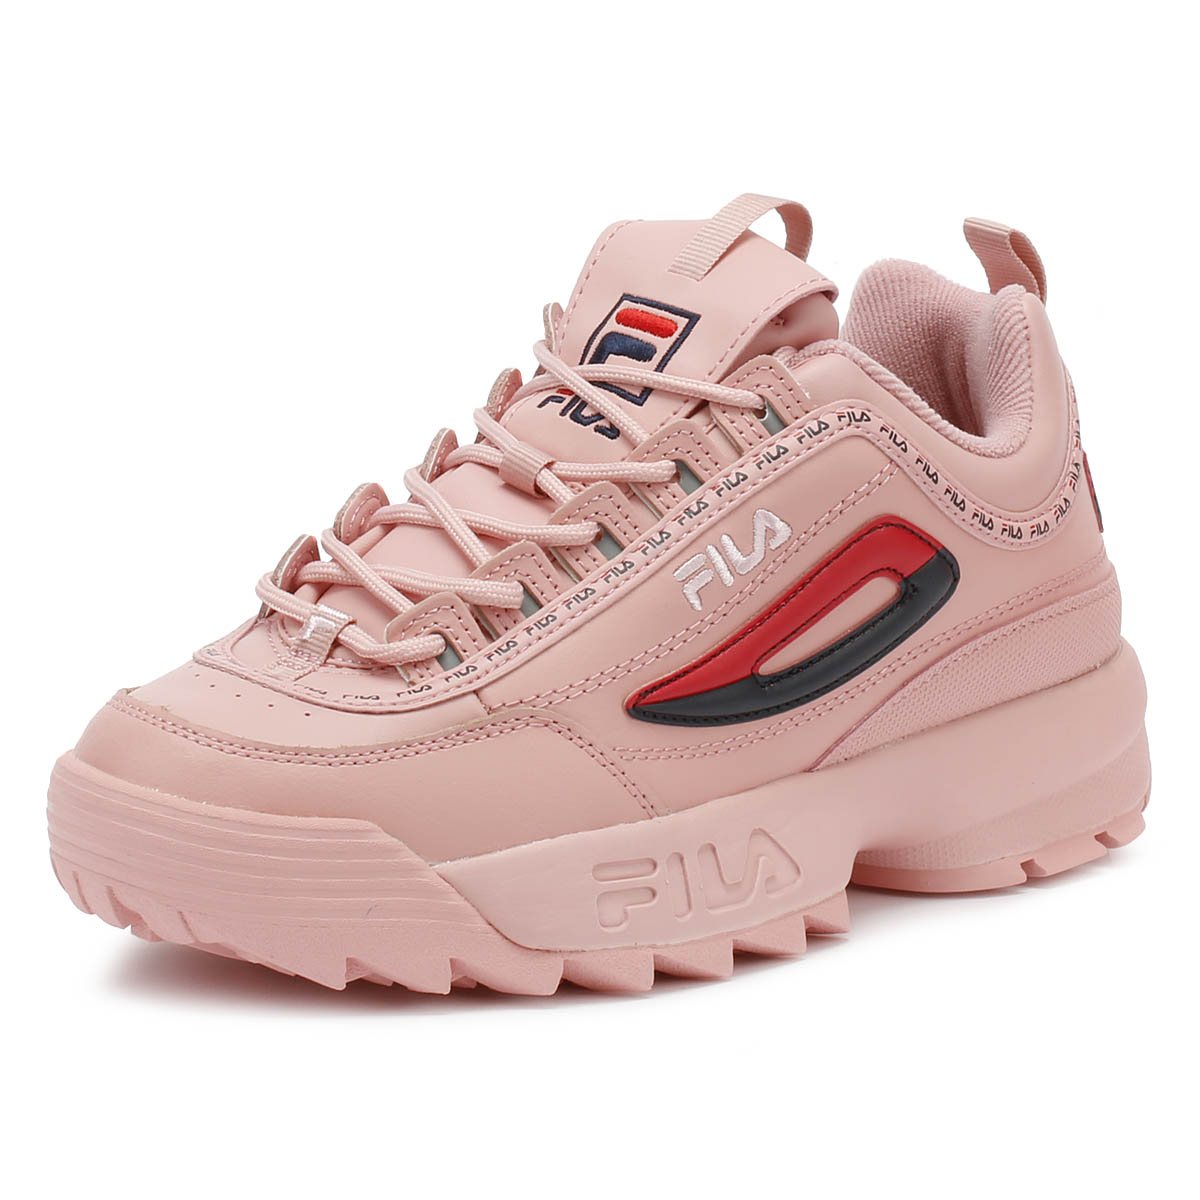 3a5c7c418dd6 Details about Fila Disruptor II Premium Repeat Pink Womens Trainers Sport  Casual Shoes